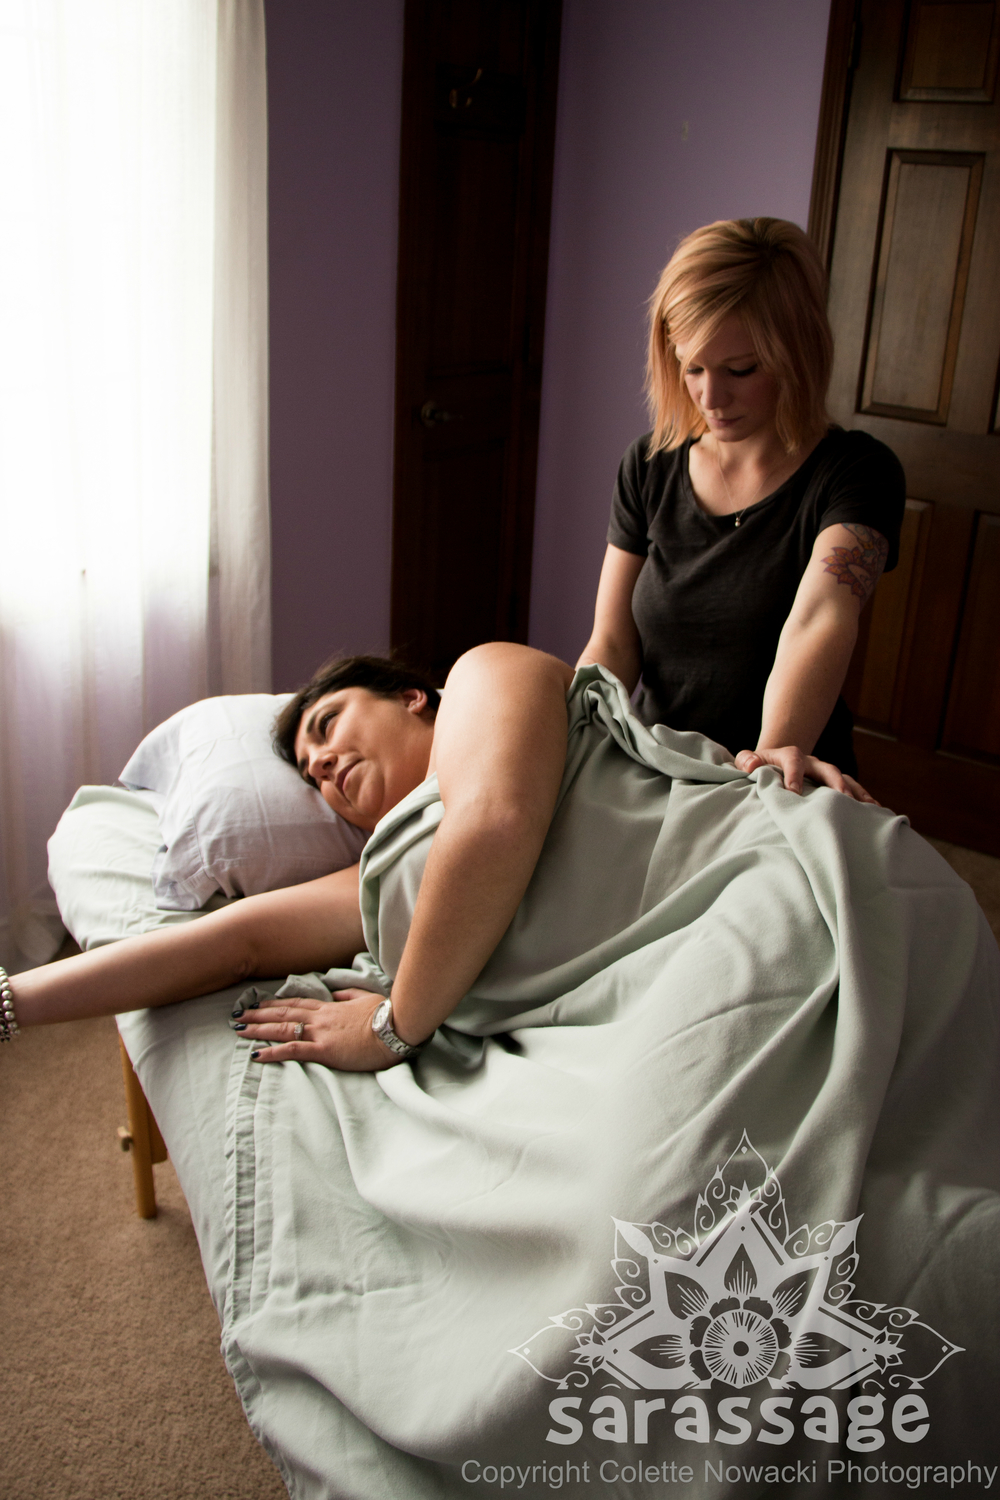 Prenatal Massage / Induction Techniques    30/$45 | 60/$75 | 90/$105   Massage for the mother-to-be! This technique supports the changing internal/external environment of the women's body during pregnancy. Specific positioning and cushioning is utilized to support the proper areas for maximized comfort and safety.  Our therapists are also trained in certain techniques to gently and safely support the natural biorhythms that occur when the baby is ready to begin the birthing process. Stimulating certain pressure points on the feet, hands, low back/hips, and shoulders can assist/nudge the baby to begin his/her journey!  *Client must be AT LEAST 36 weeks along in pregnancy, or have a doctor's note to clear you to receive and induction techniques!